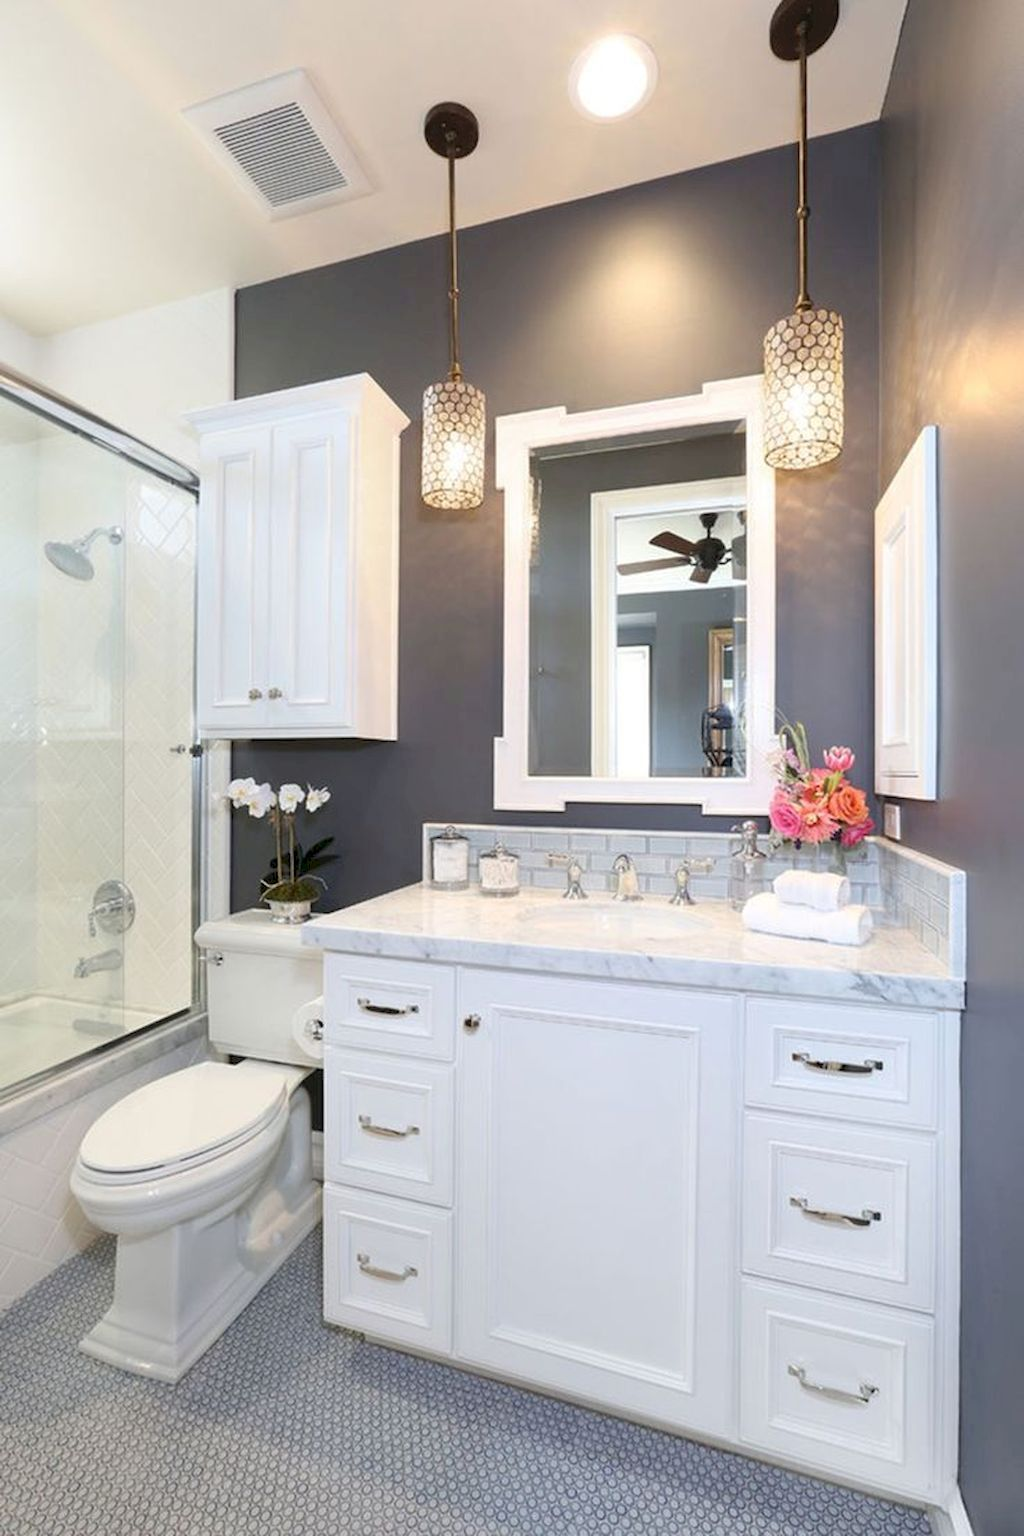 50 Best Master Bathroom Remodel Ideas | Master bathrooms and Pallets